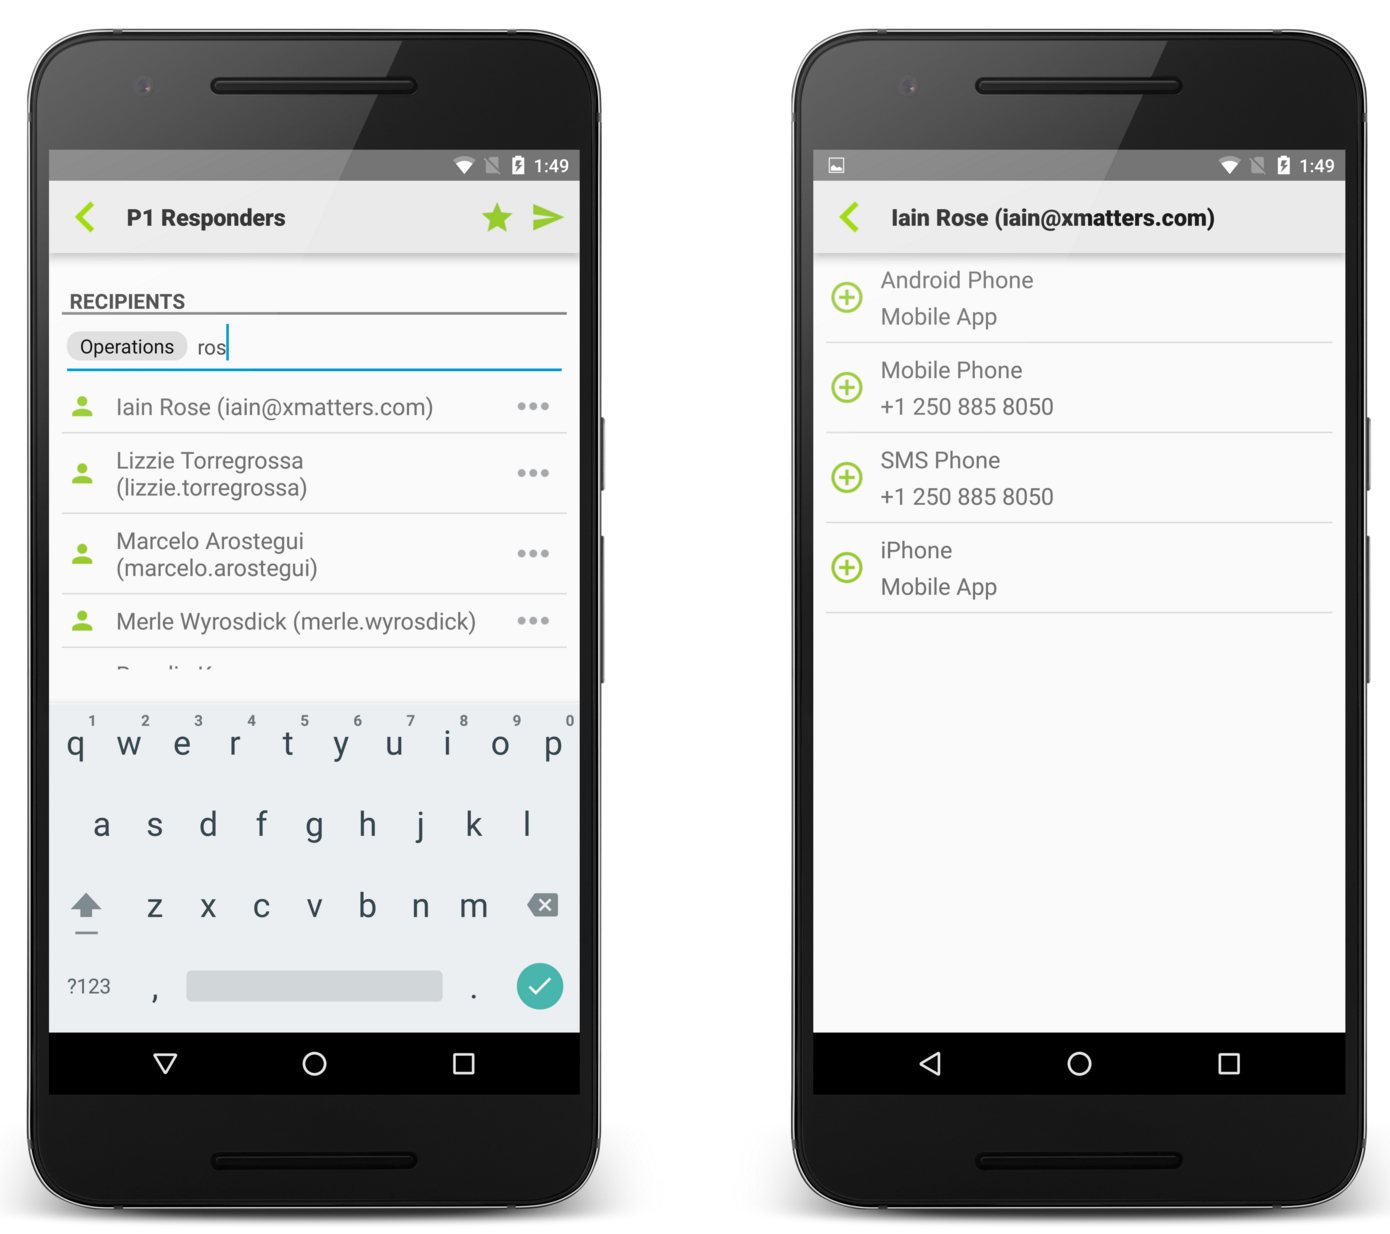 Modifying Message Recipients for the Android app